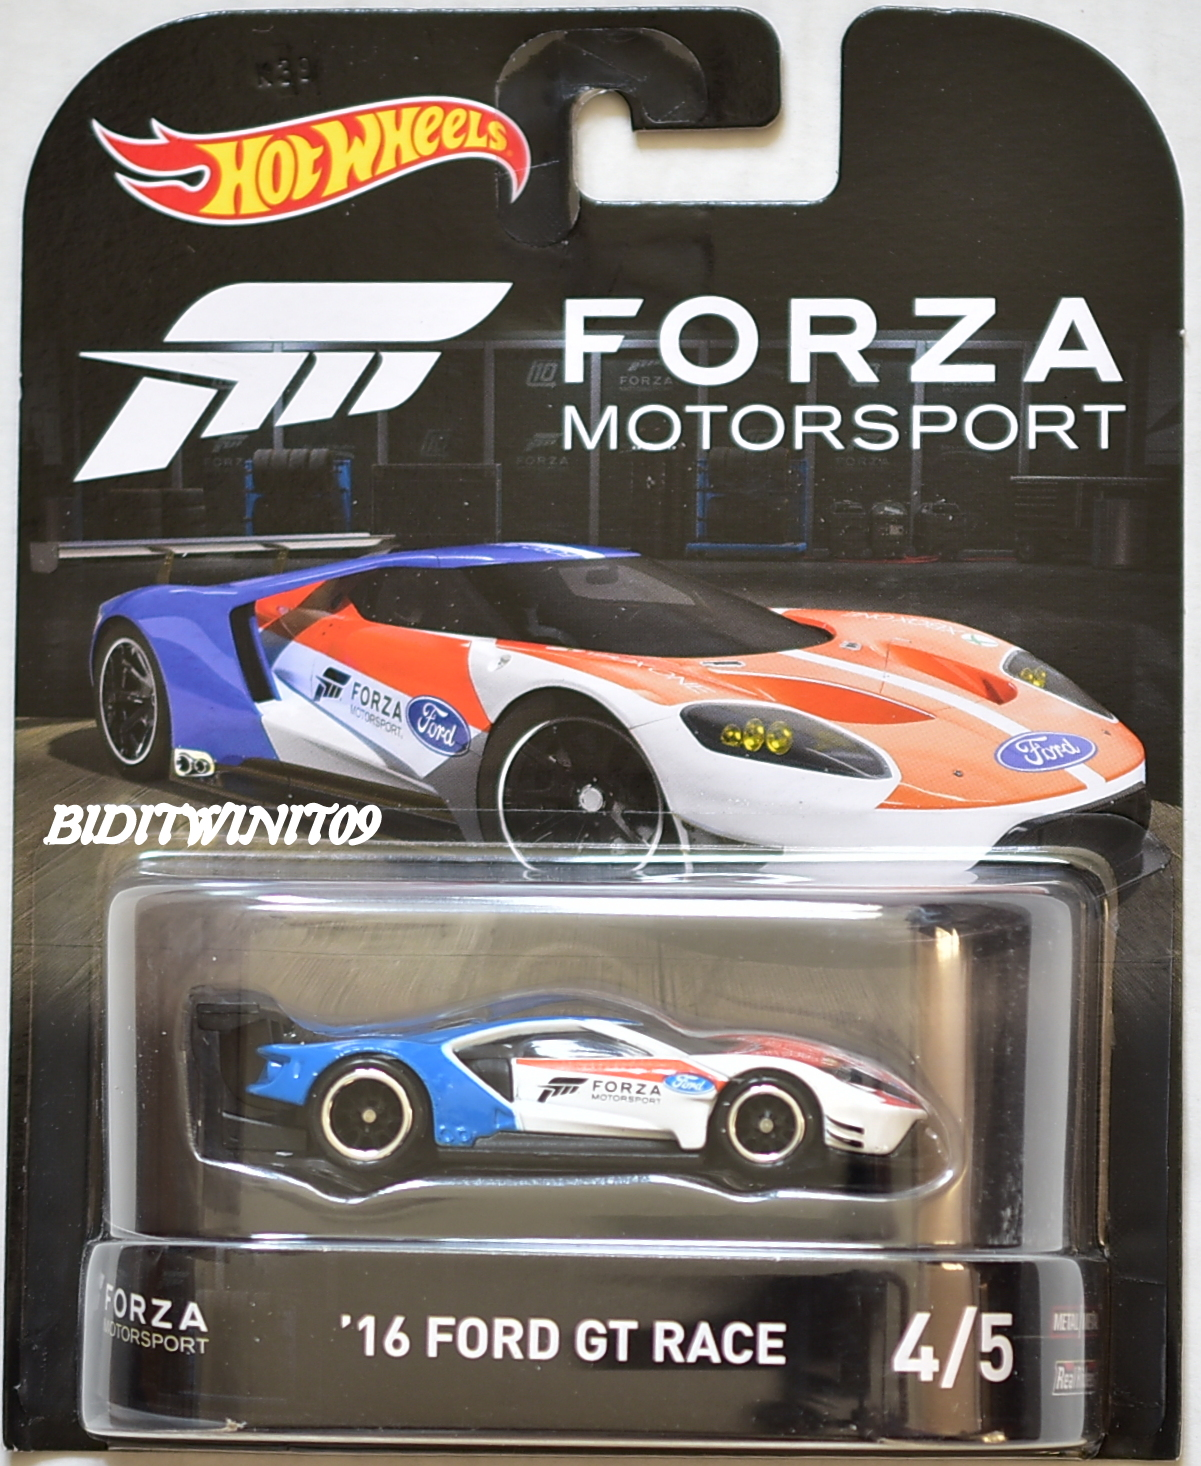 HOT WHEELS 2017 RETRO ENTERTAINMENT FORZA MOTORSPORT '16 FORD GT RACE #4/5